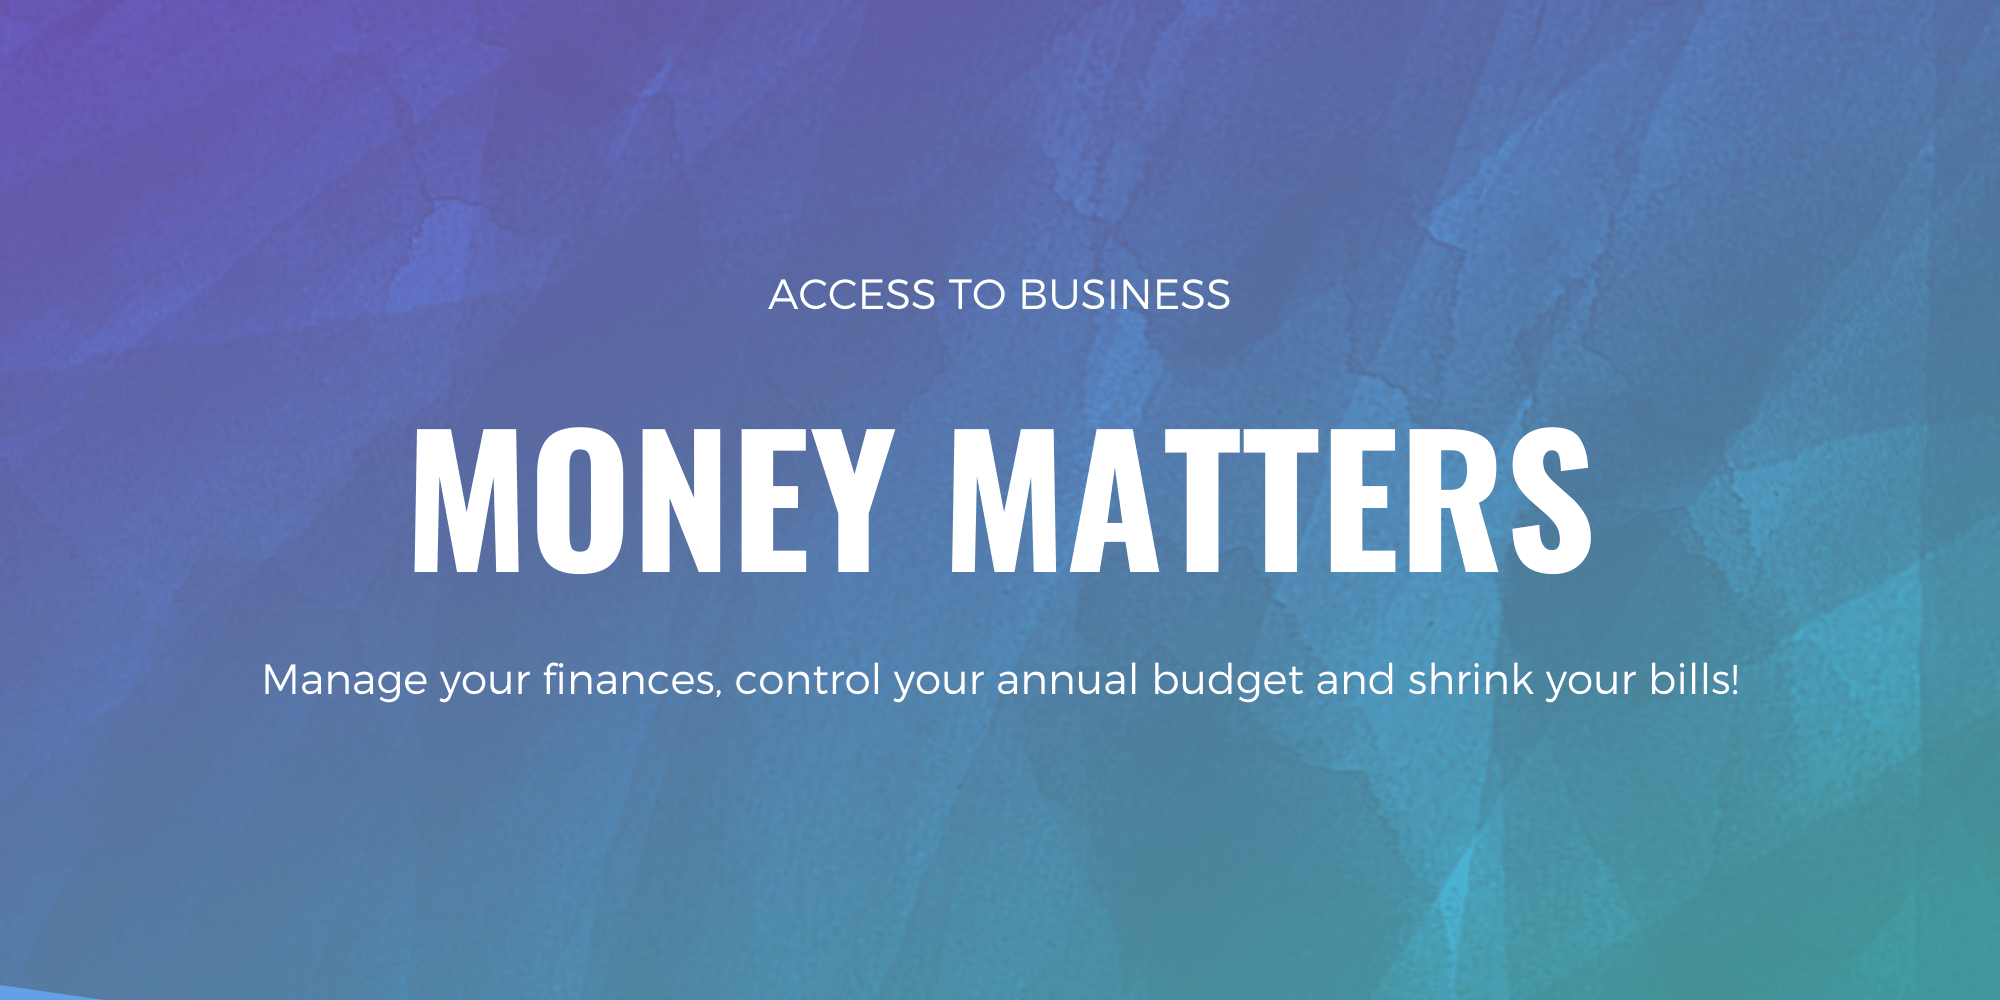 Money Matters, finance, budgeting, bills, money management, finances, online, webinar, training, online webinar,